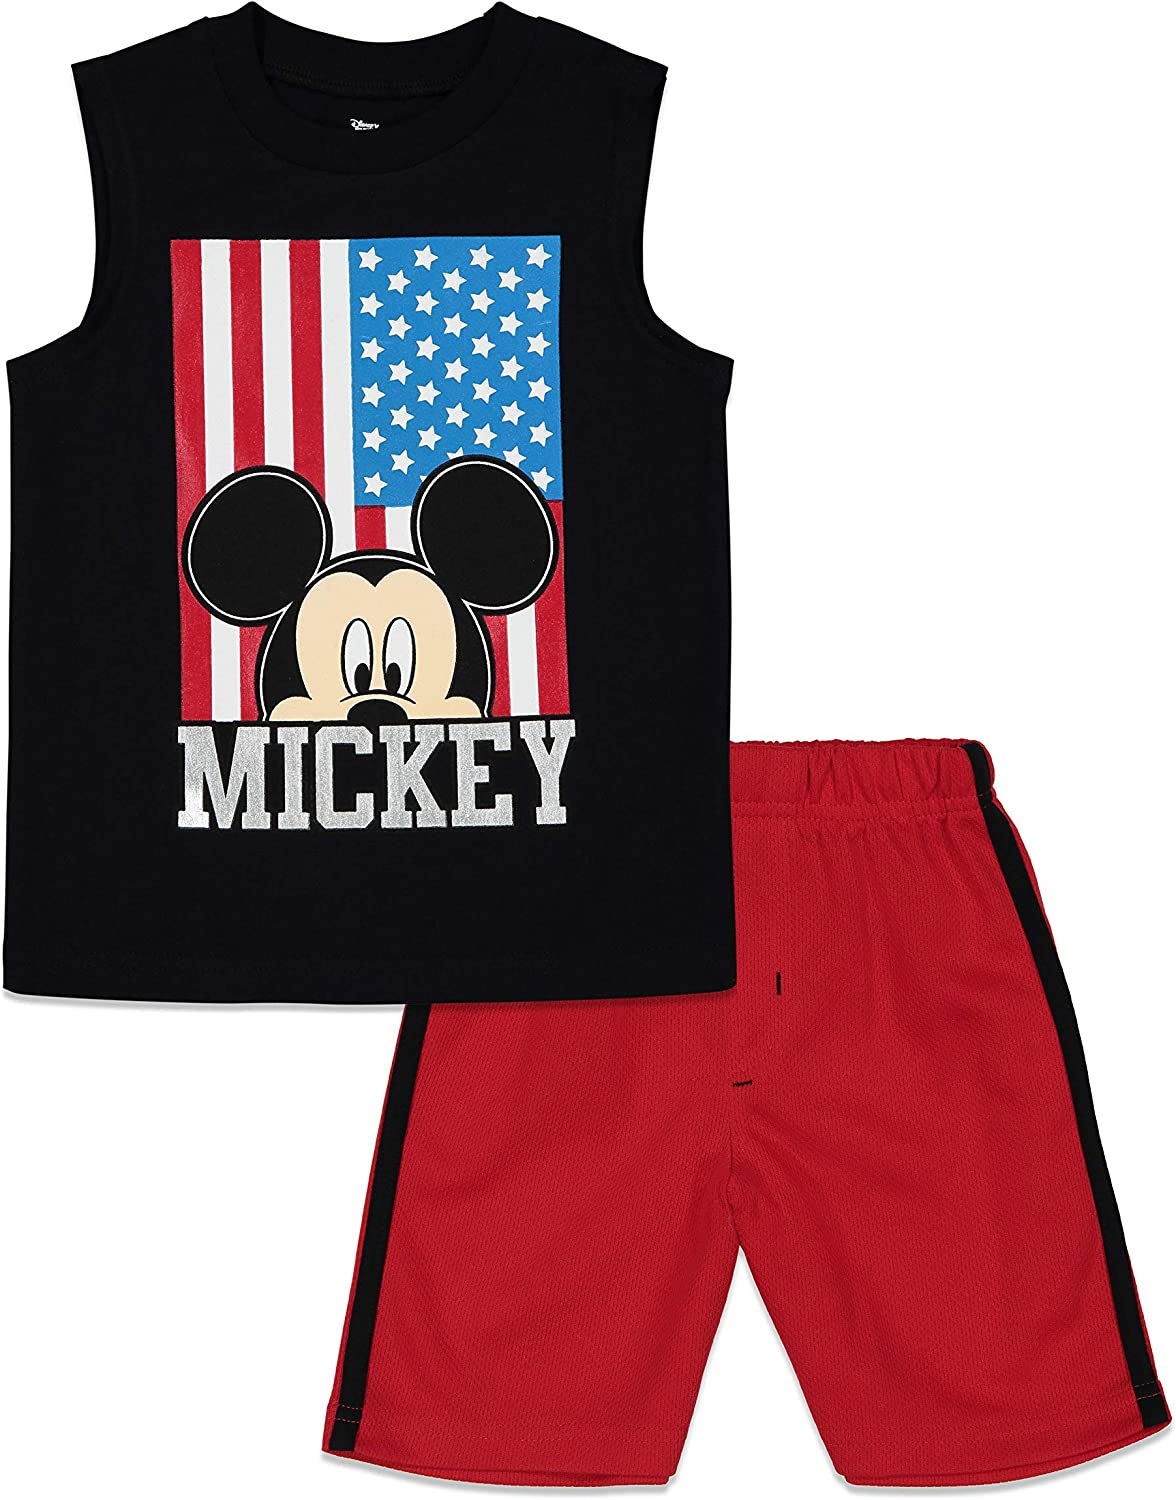 Disney Mickey Mouse Boys Tank Top and Shorts Set